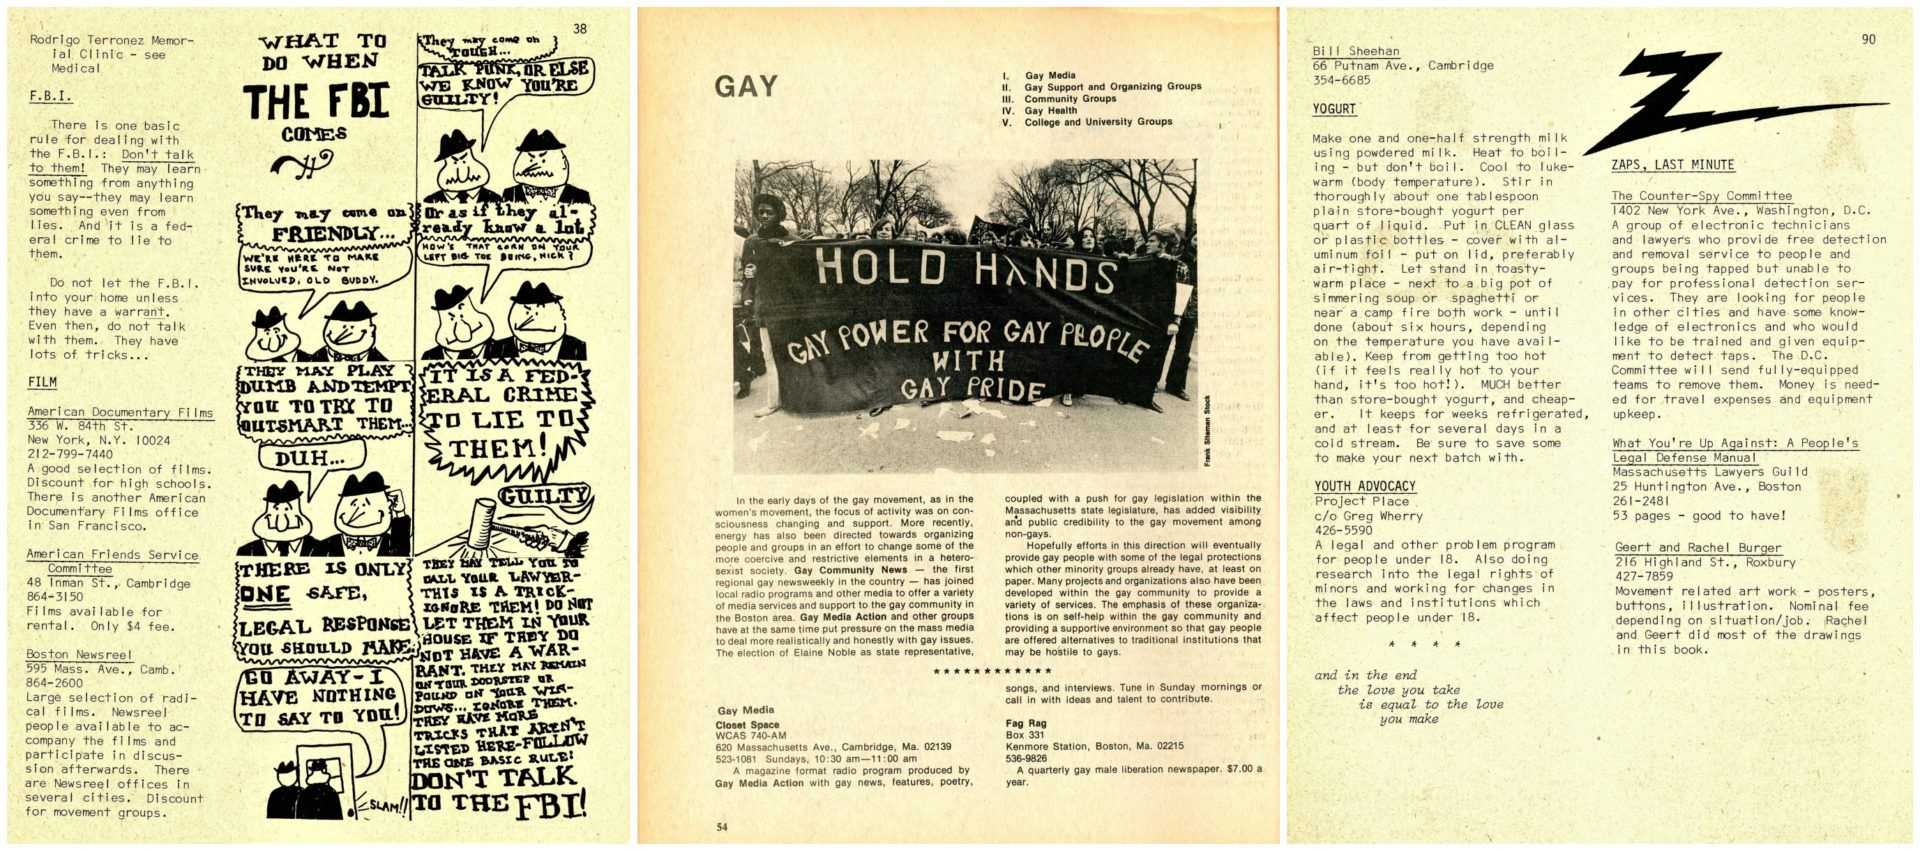 Left to Right: A 1971 People's Yellow Pages cartoon explaining the rights of a citizen when approached by the FBI;  A page from the 1976 edition with gay release lists;  A yogurt recipe in the 1971 edition. (Courtesy Brian Coleman)